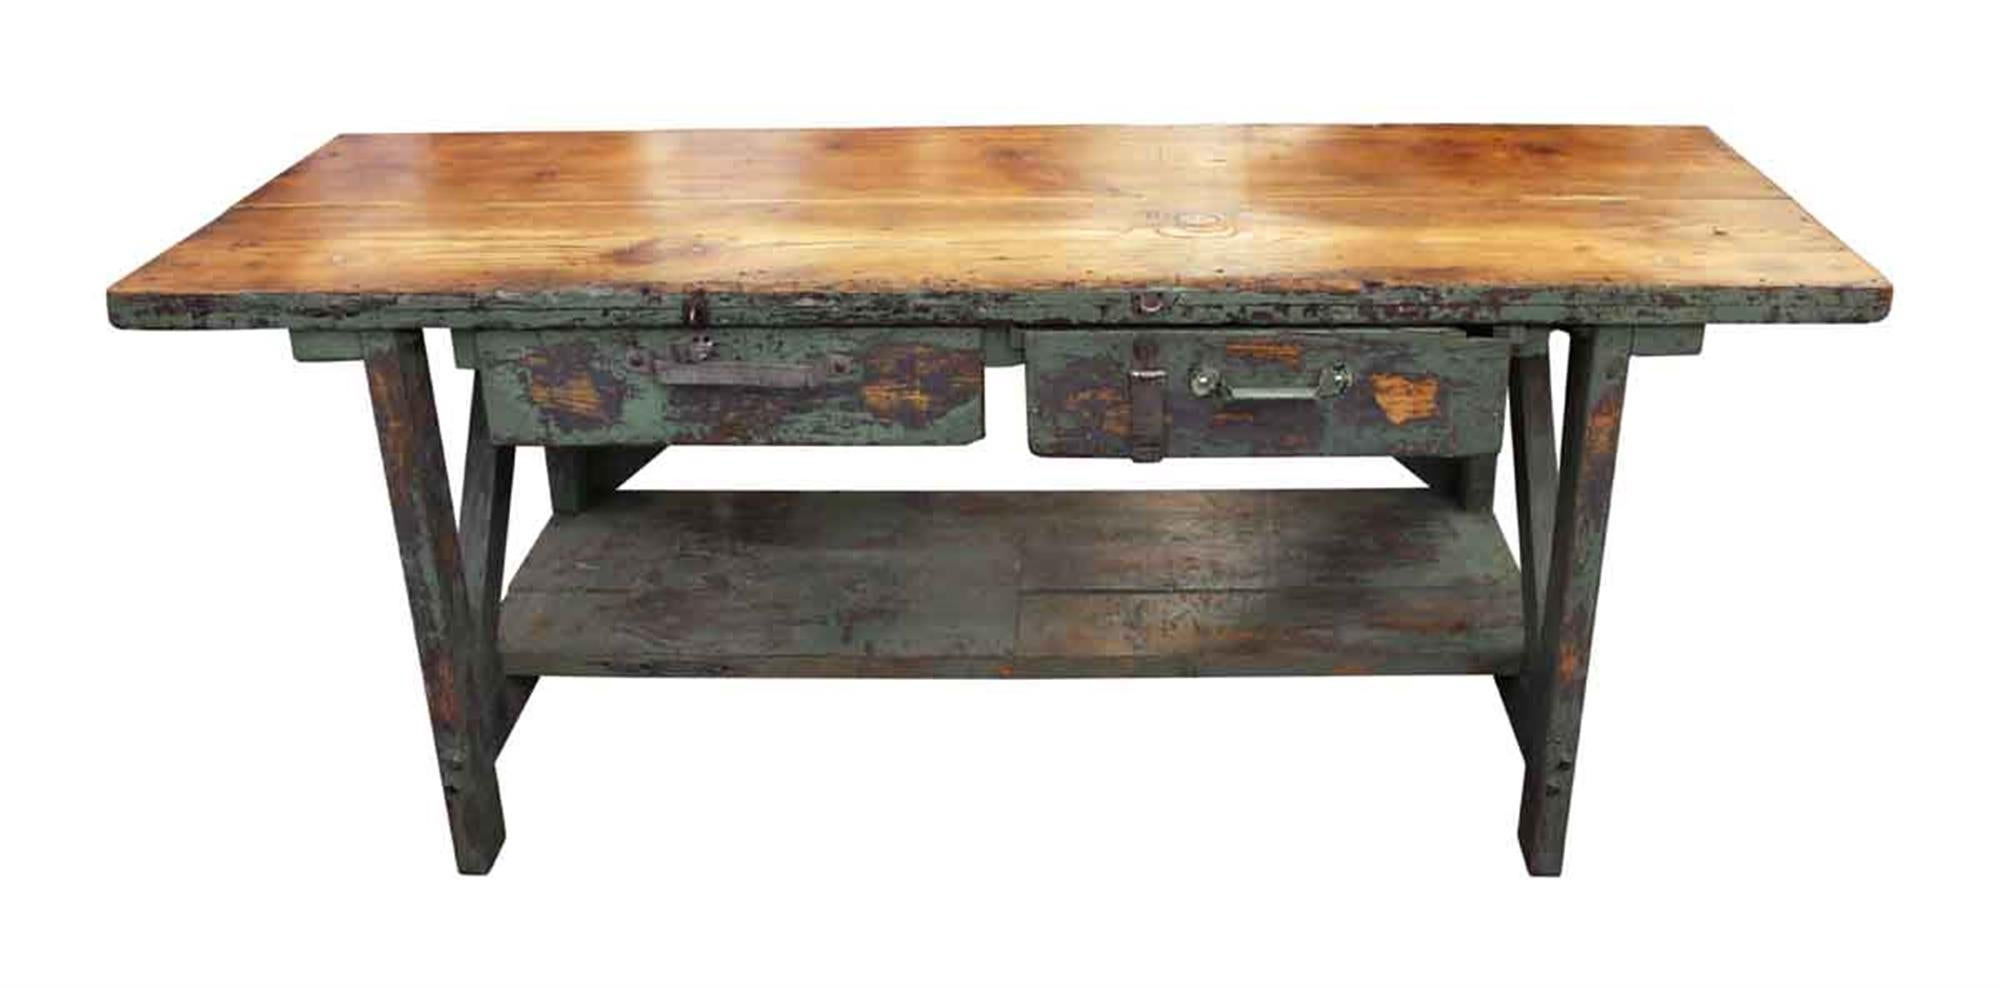 Merveilleux 1940s Large Industrial Green Painted Farm Work Table With Two Drawers